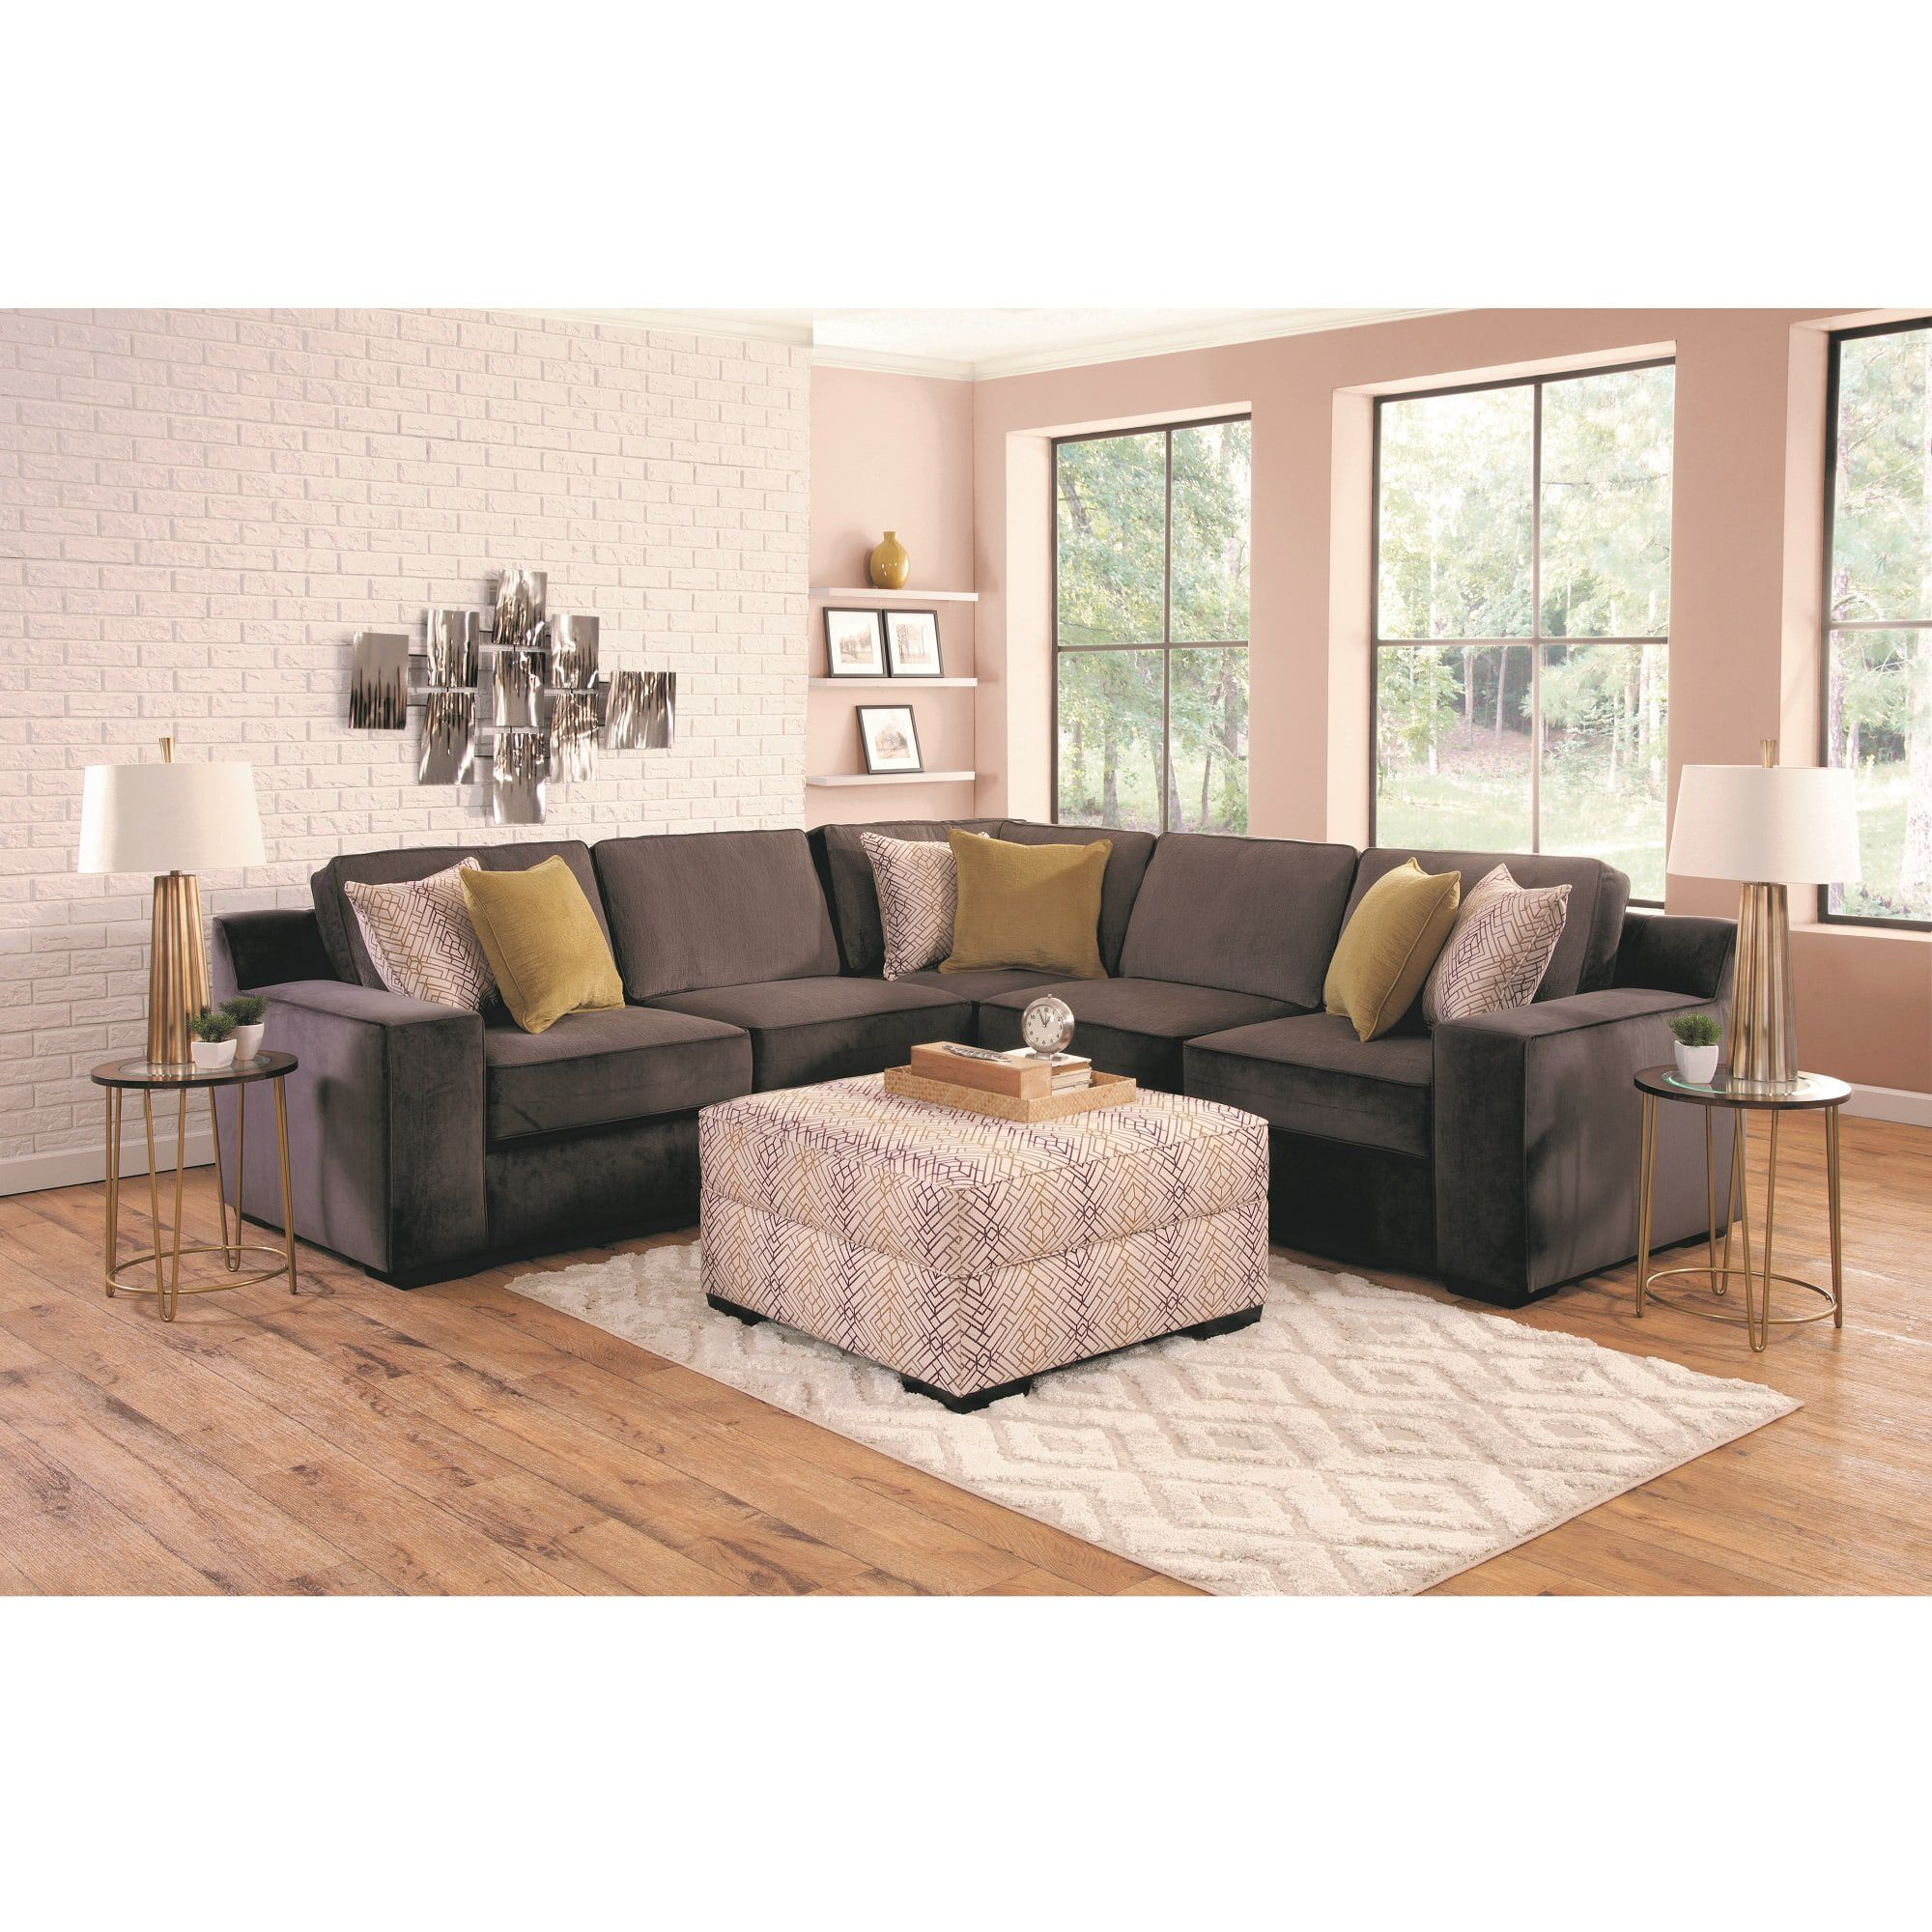 4 Piece Sonja Living Room Collection Rent to